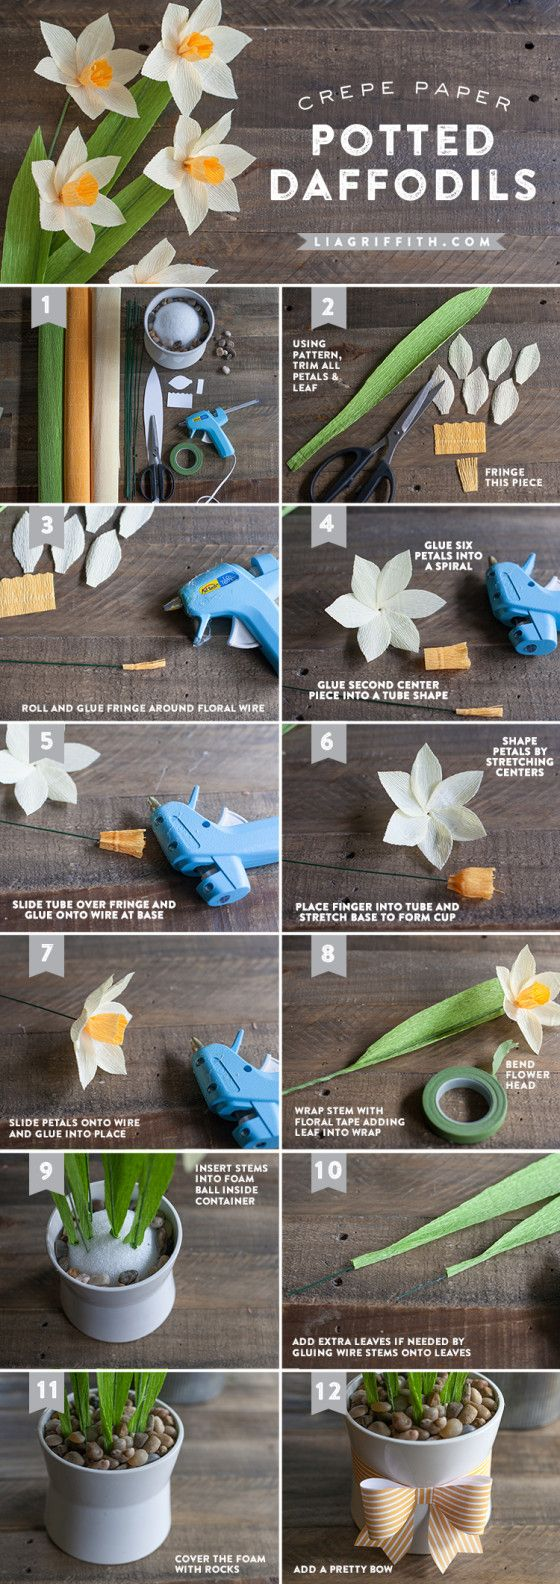 DIY Potted Paper Daffodils Tutorial